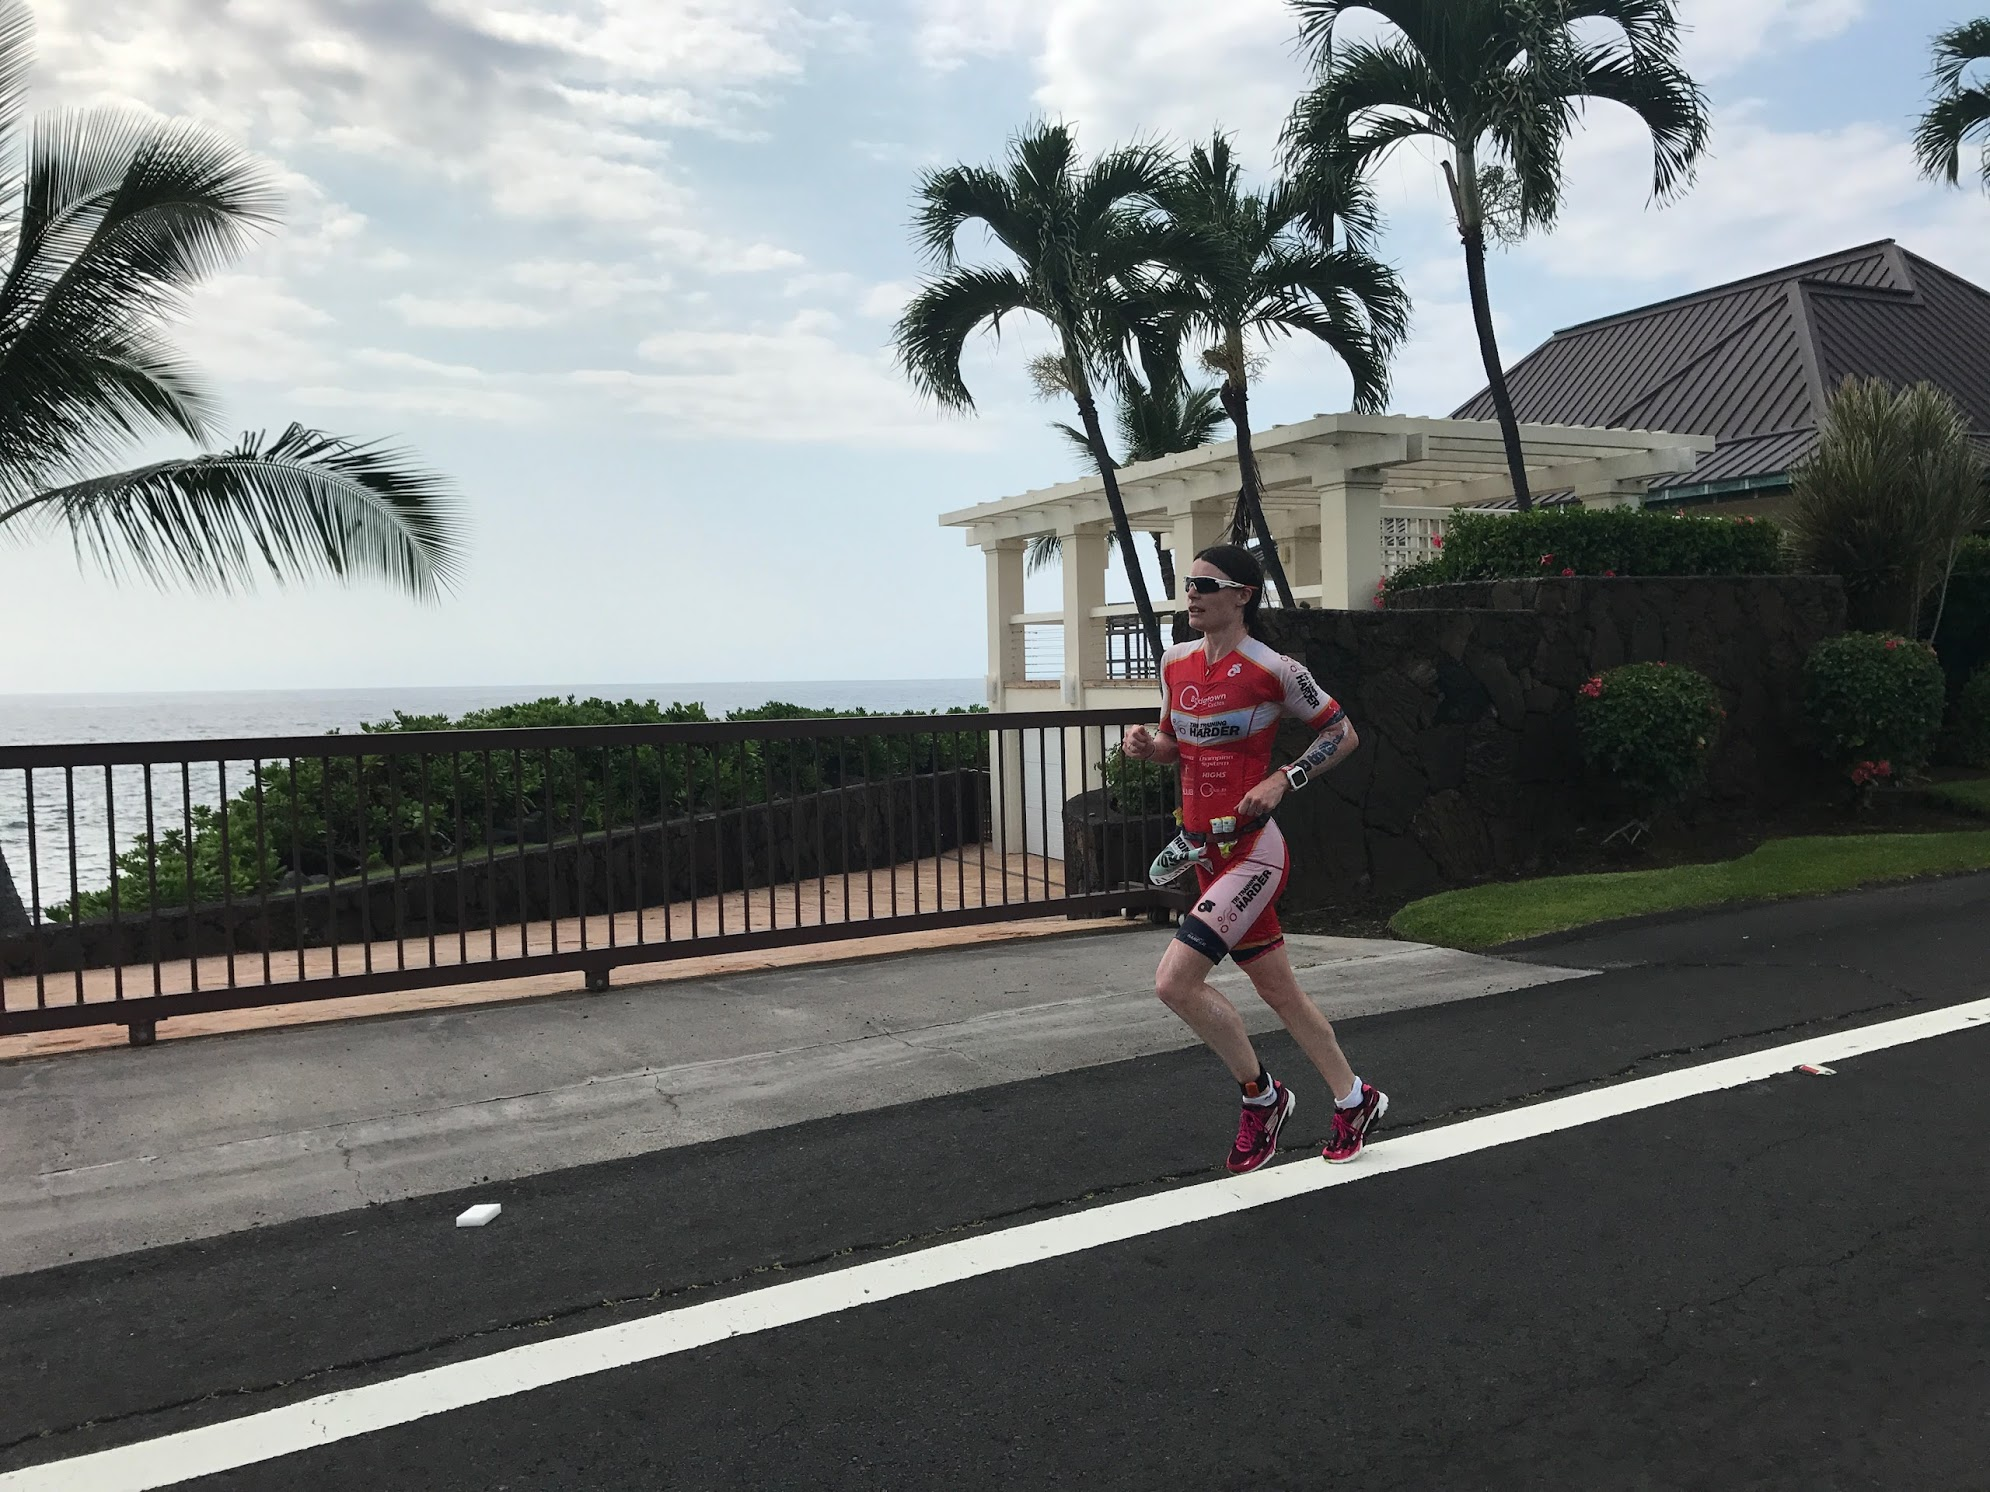 A definite change in running form as she sets off on Ali'i Drive, IRONMAN World Championships